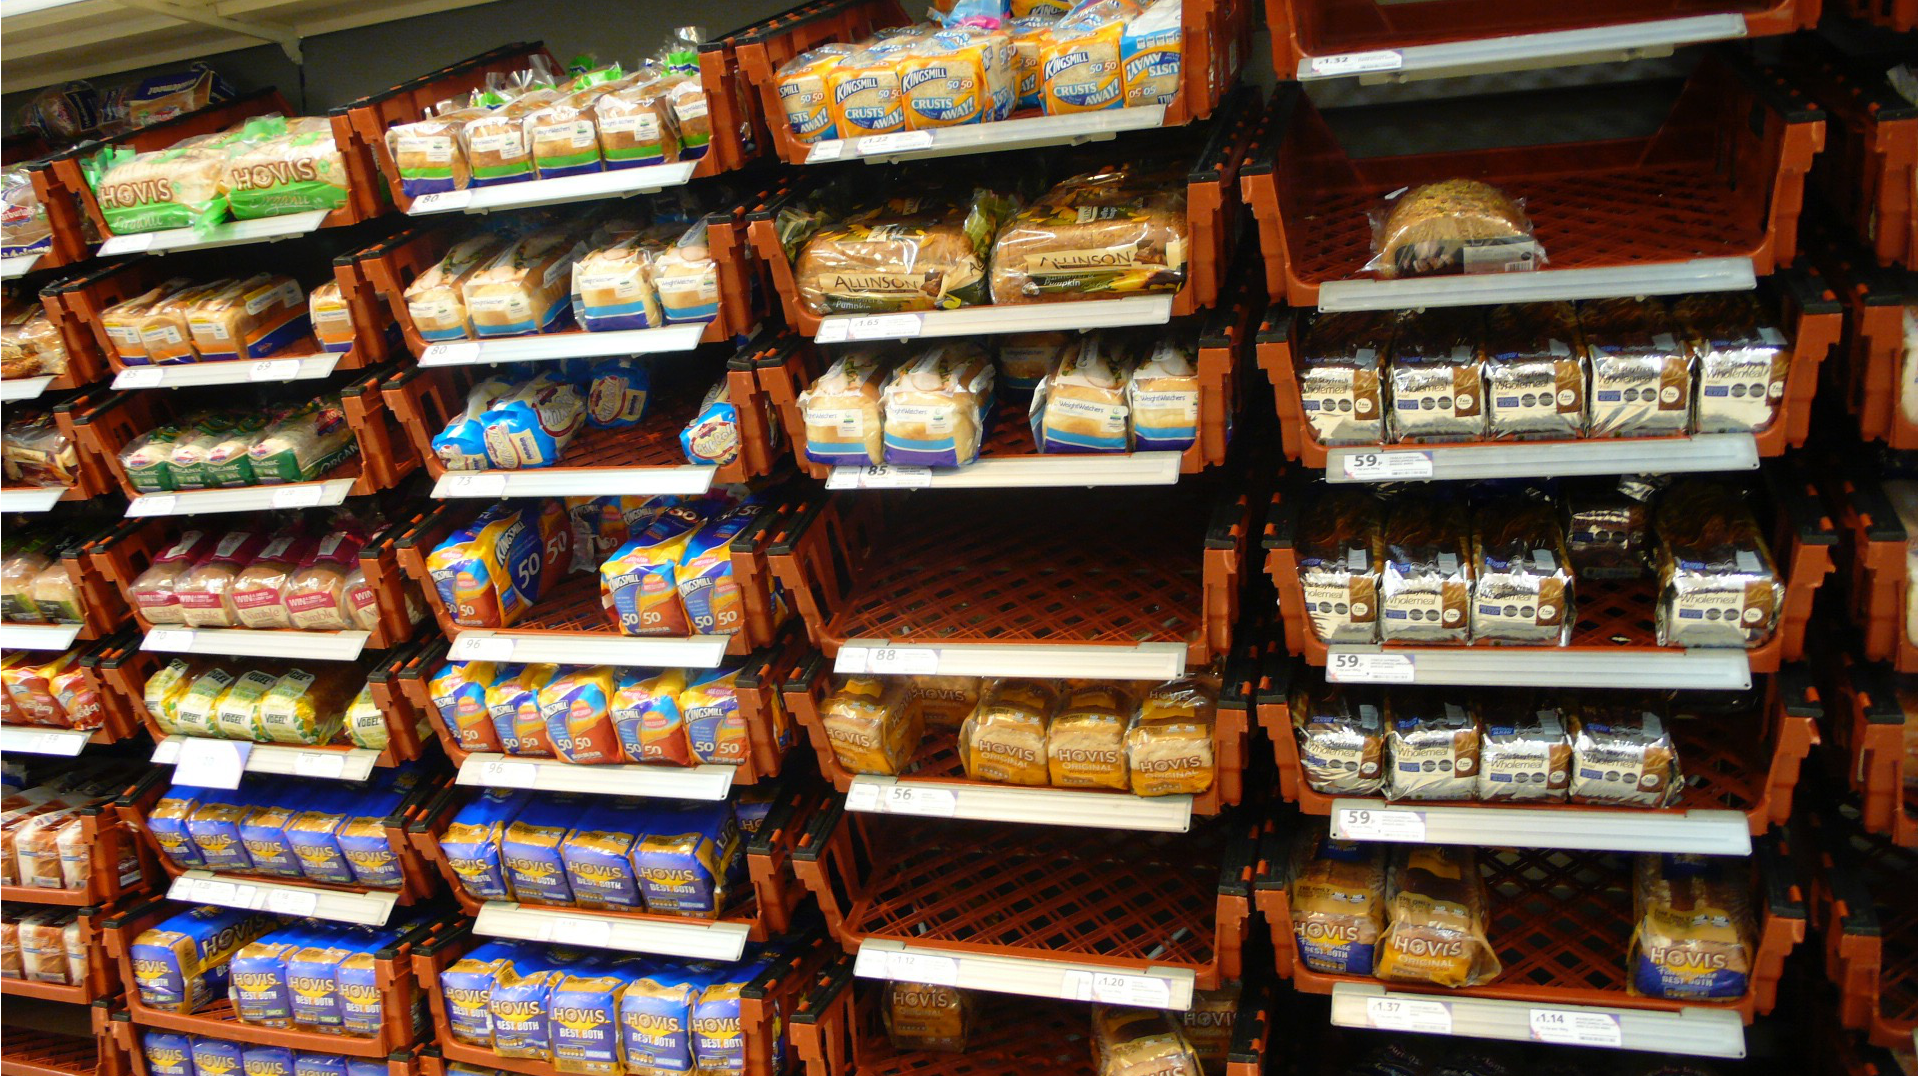 Image of supermarket bread, mostly white. The bread is displayed in bread trays, stacked at least 8 high along the wall.